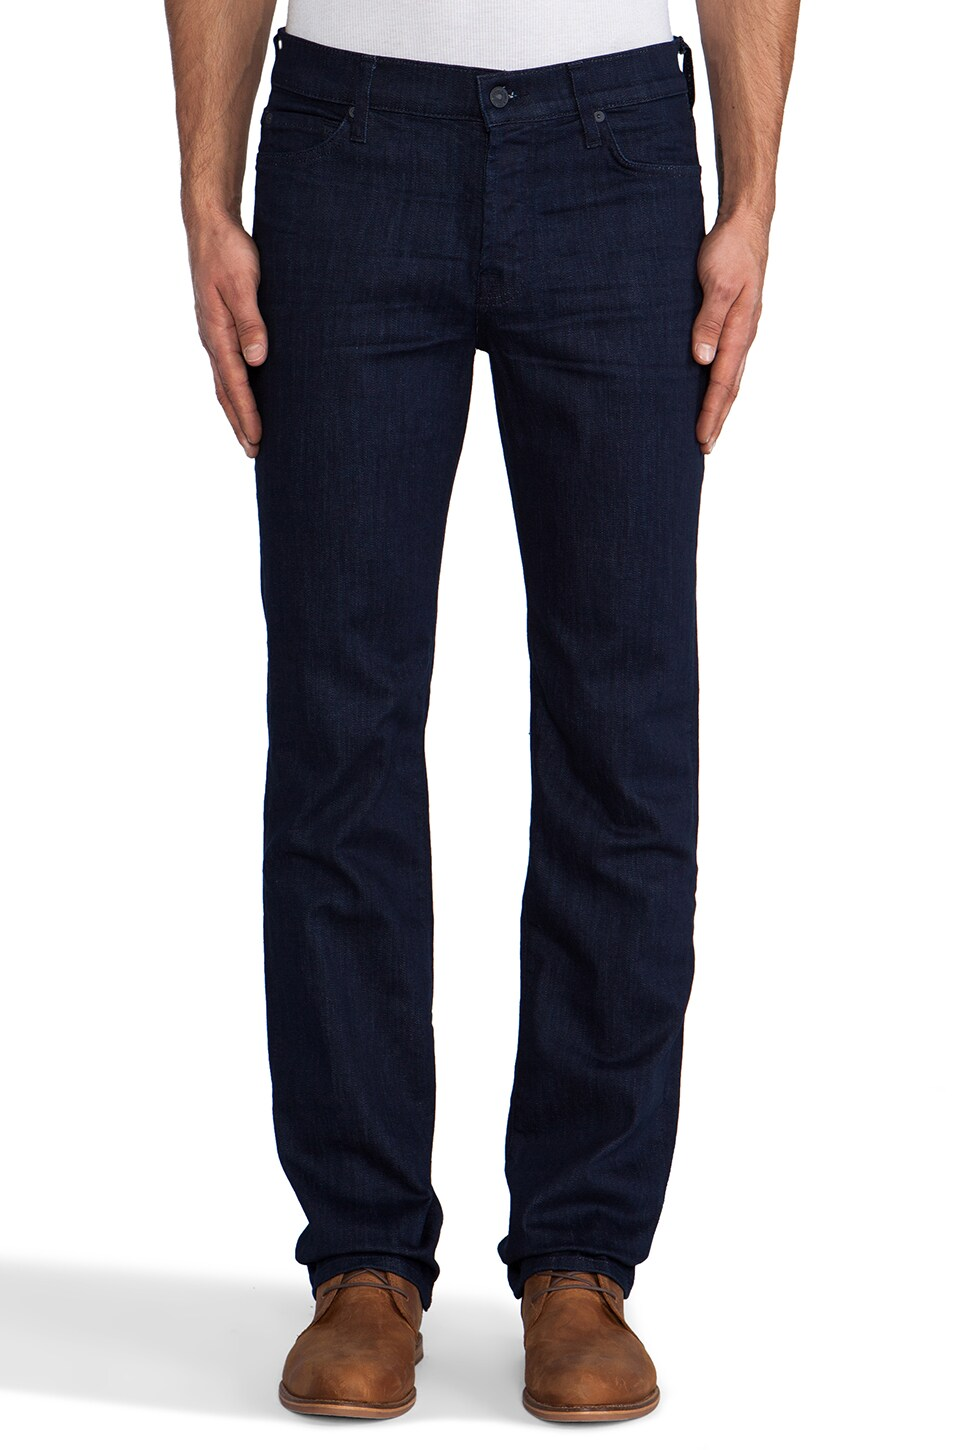 7 For All Mankind Luxe Performance Standard in Sunsets Edge